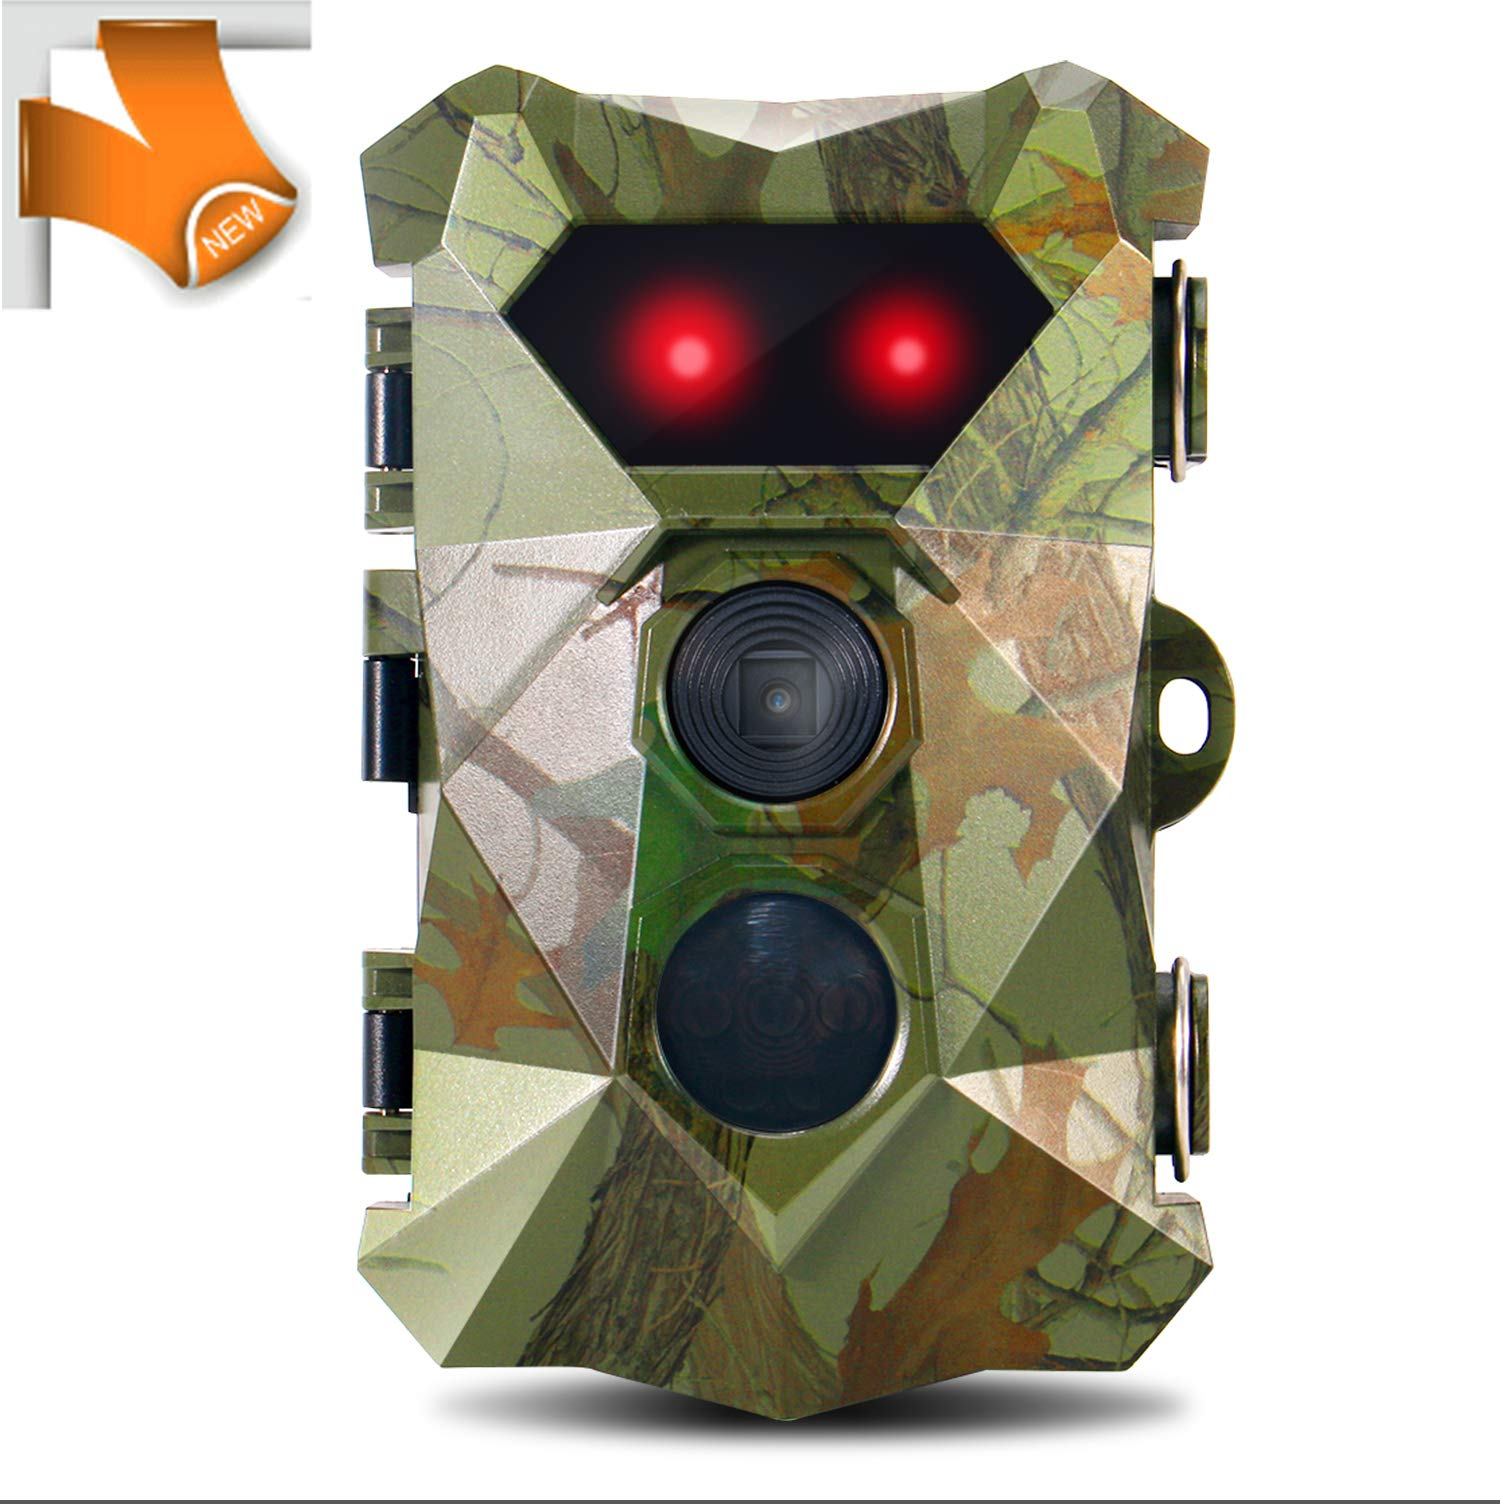 """Trail Hunting Camera 16MP 1080P, Super Power IR LEDs Night Vision up to 82ft Trail Cams, 0.2s Fast Trigger Motion Activated Hunting Cam with Waterproof 2.4"""" LCD Screen Wildlife Outdoor Game Monitor"""